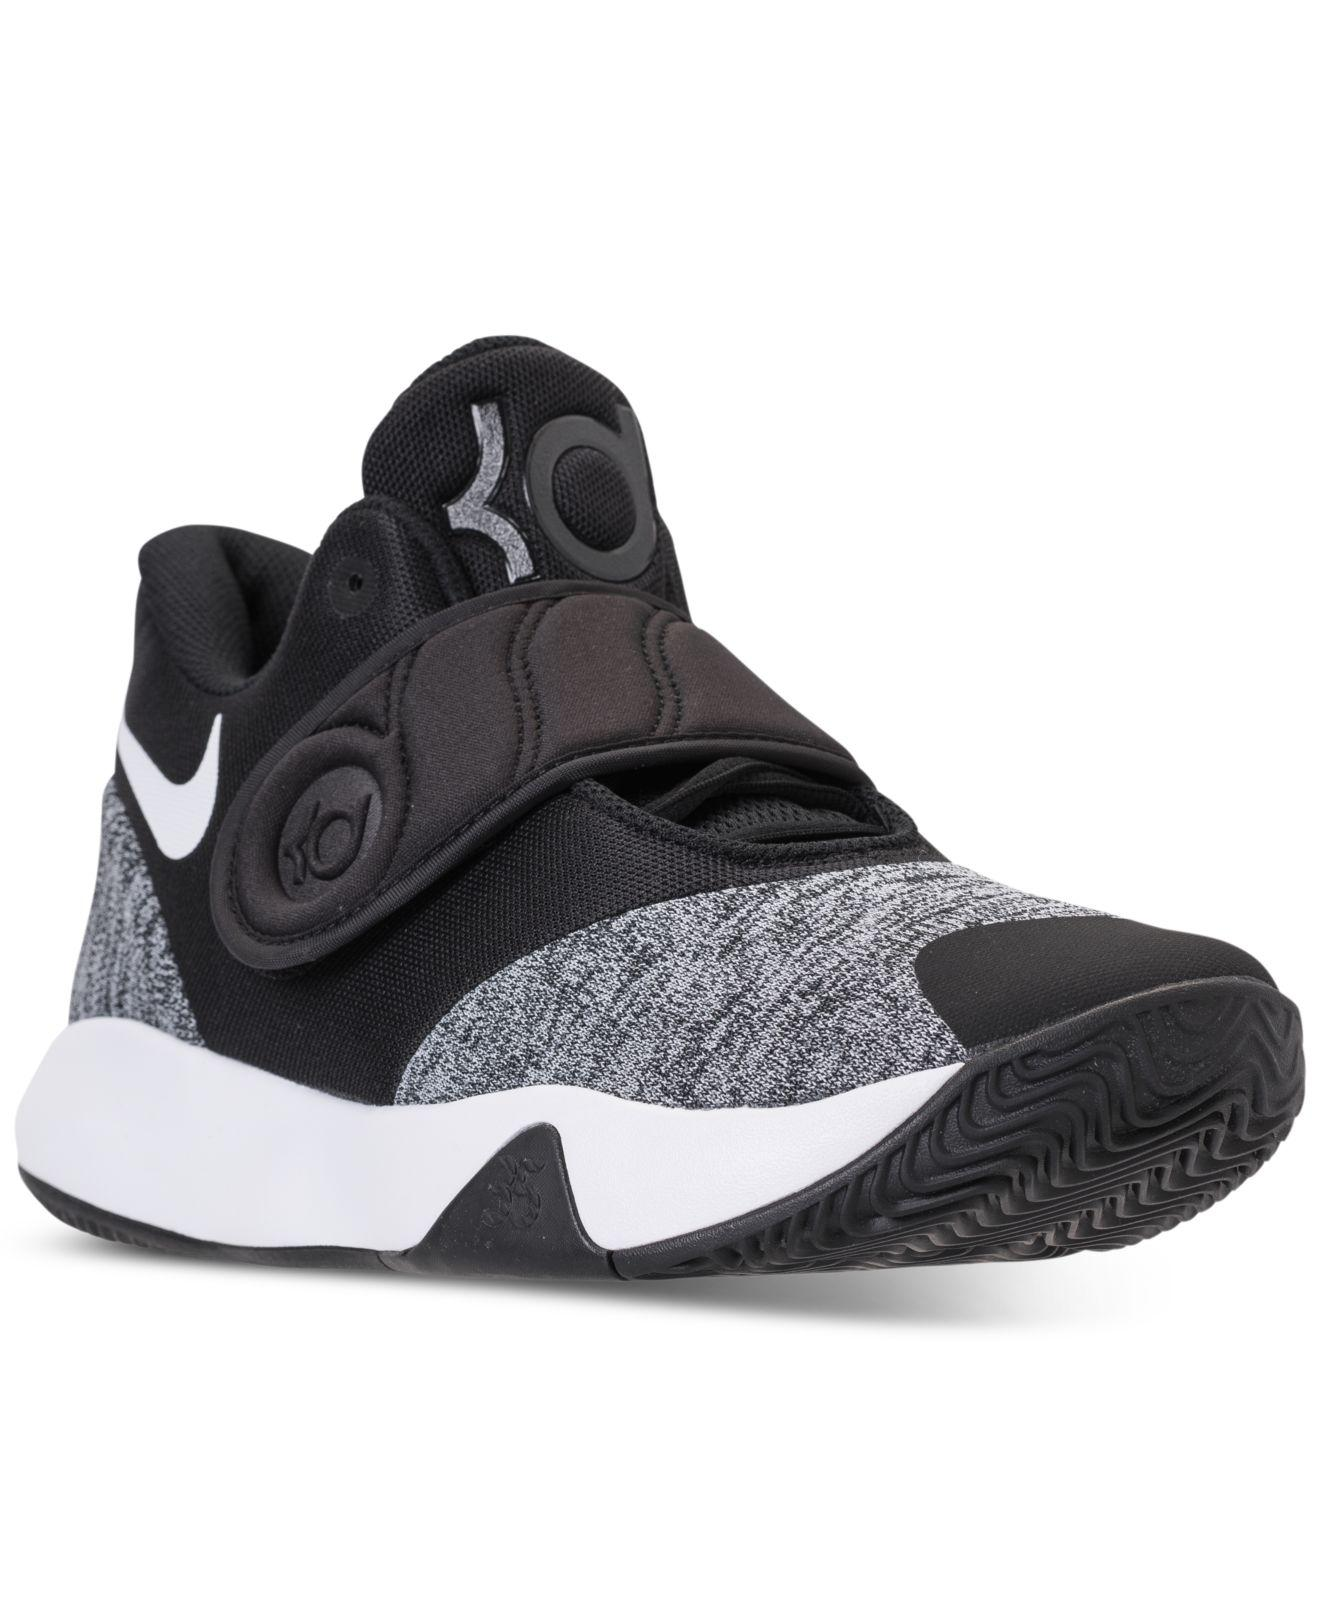 949673631cca ... sale lyst nike kd trey 5 vi basketball sneakers from finish line in  48c03 32b83 ...